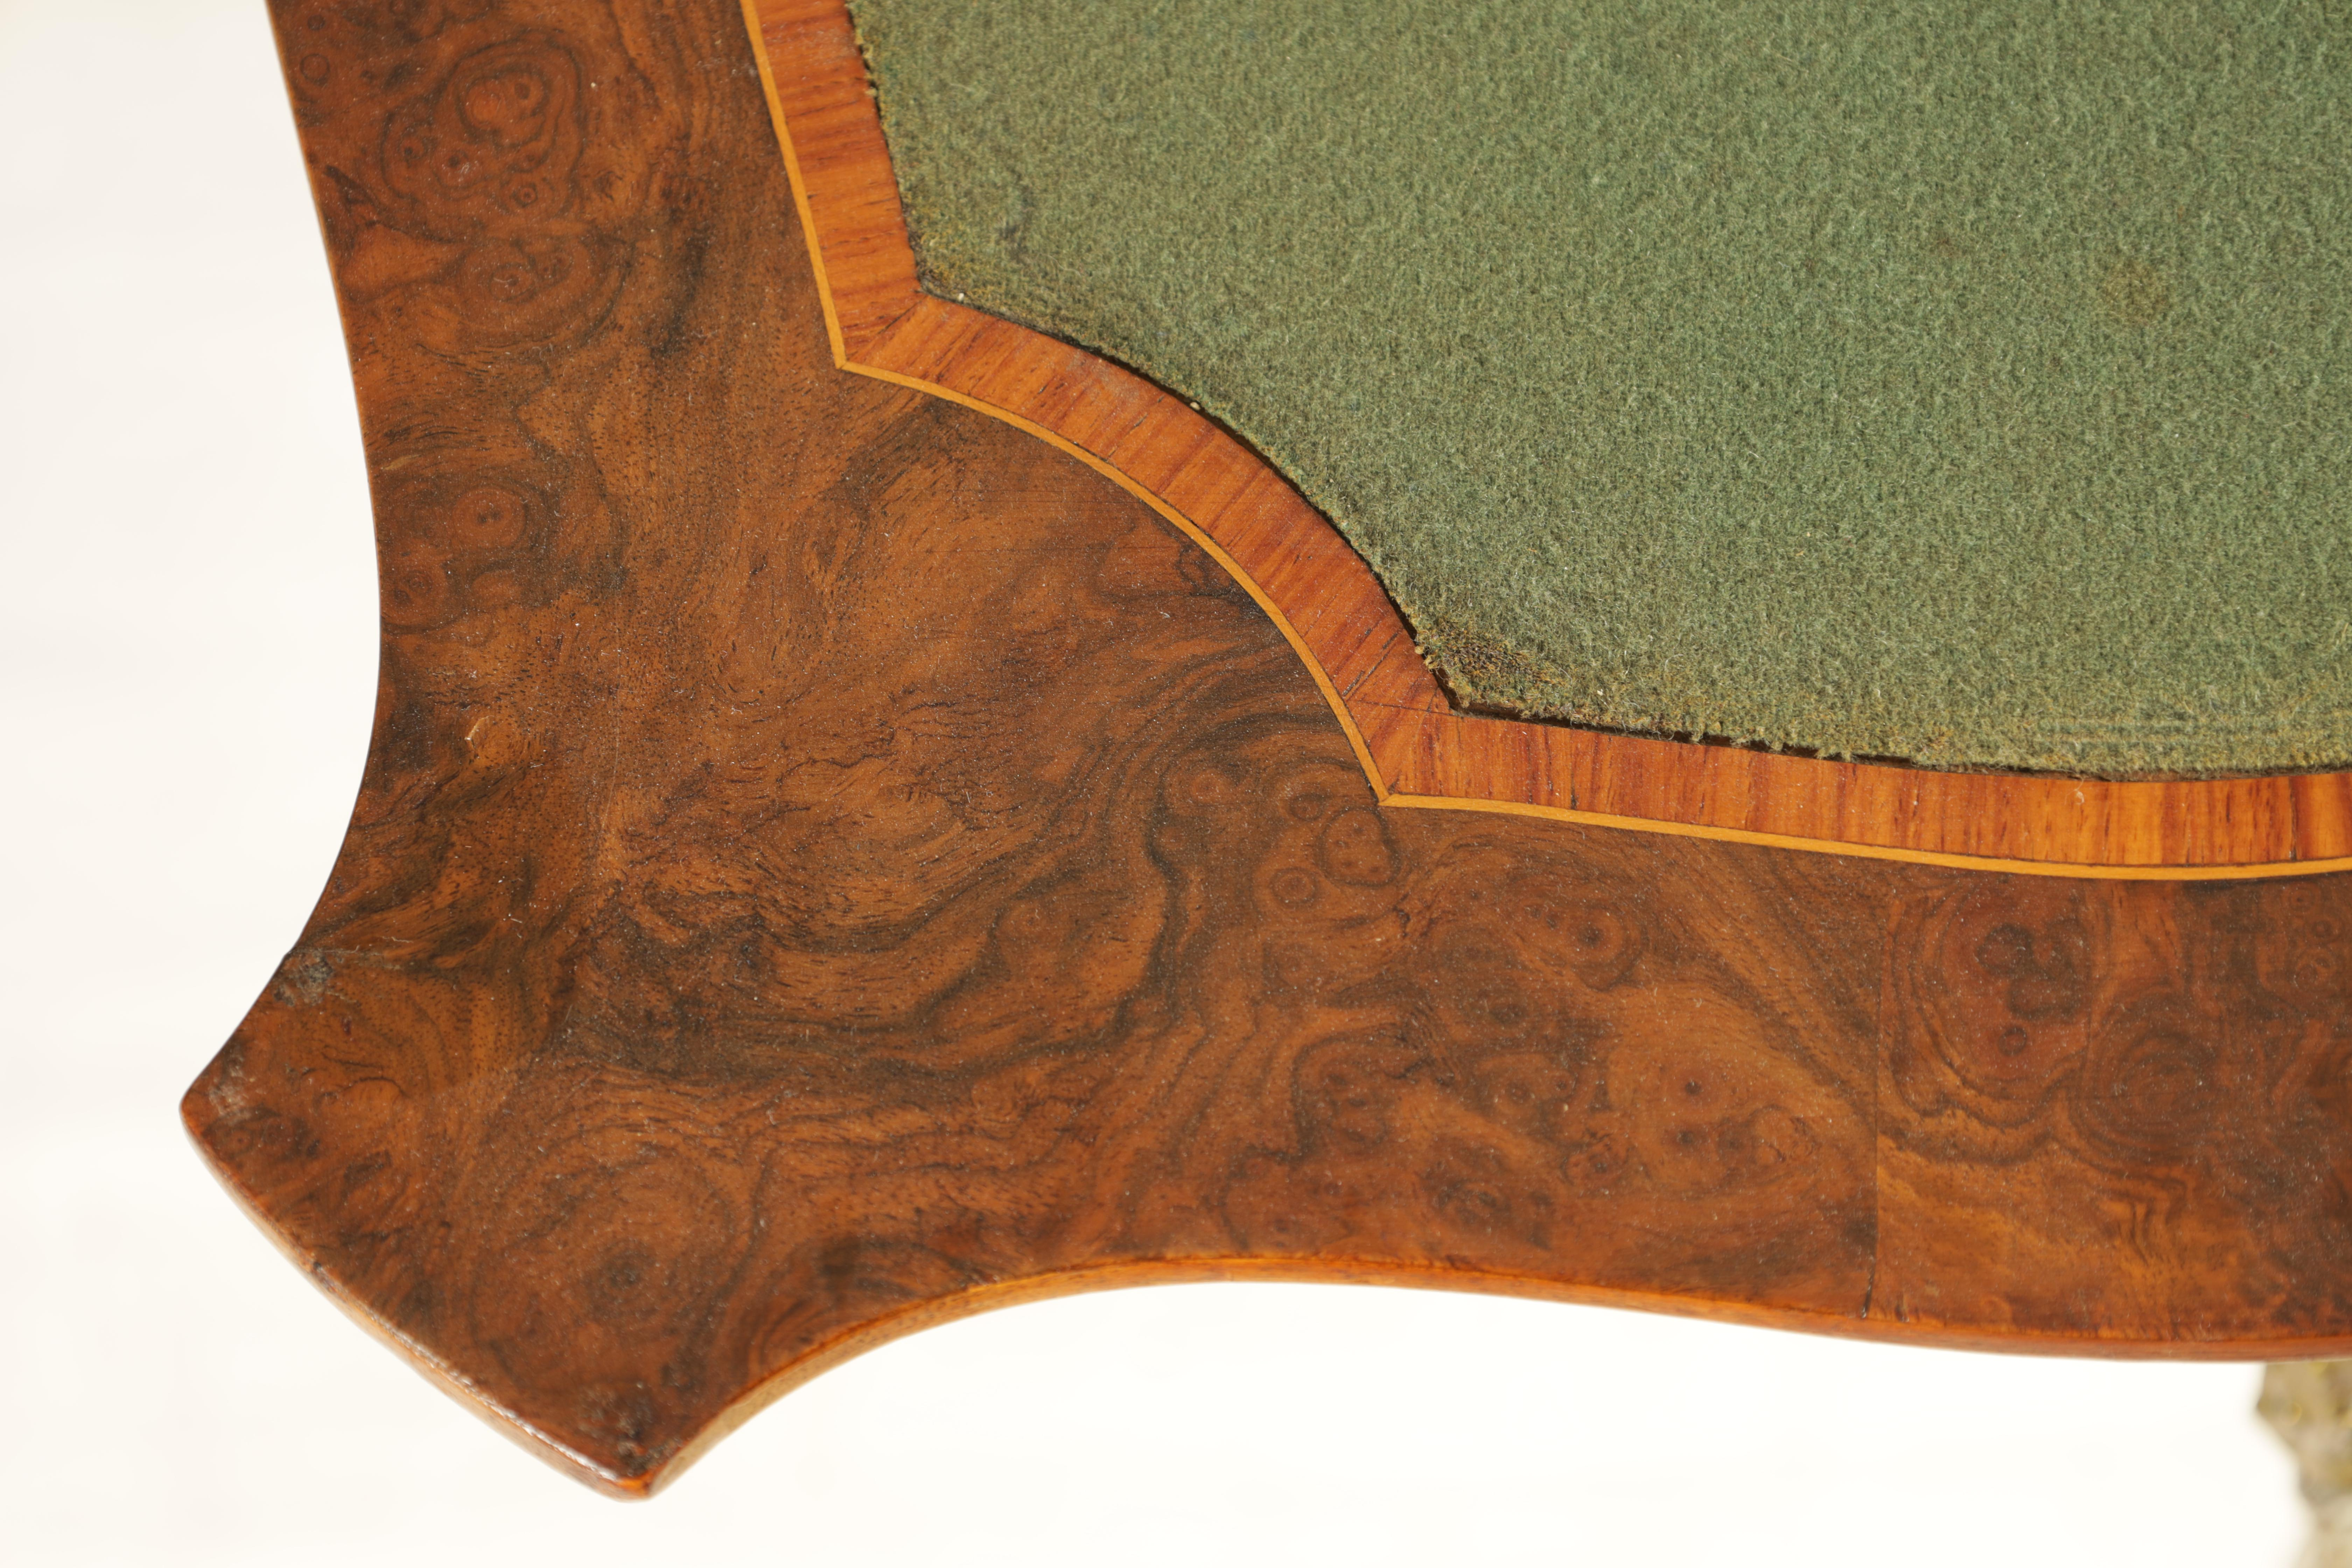 A 19TH CENTURY FRENCH KINGWOOD CROSS-BANDED BURR WALNUT SERPENTINE CARD TABLE with ormolu mounts and - Image 10 of 13